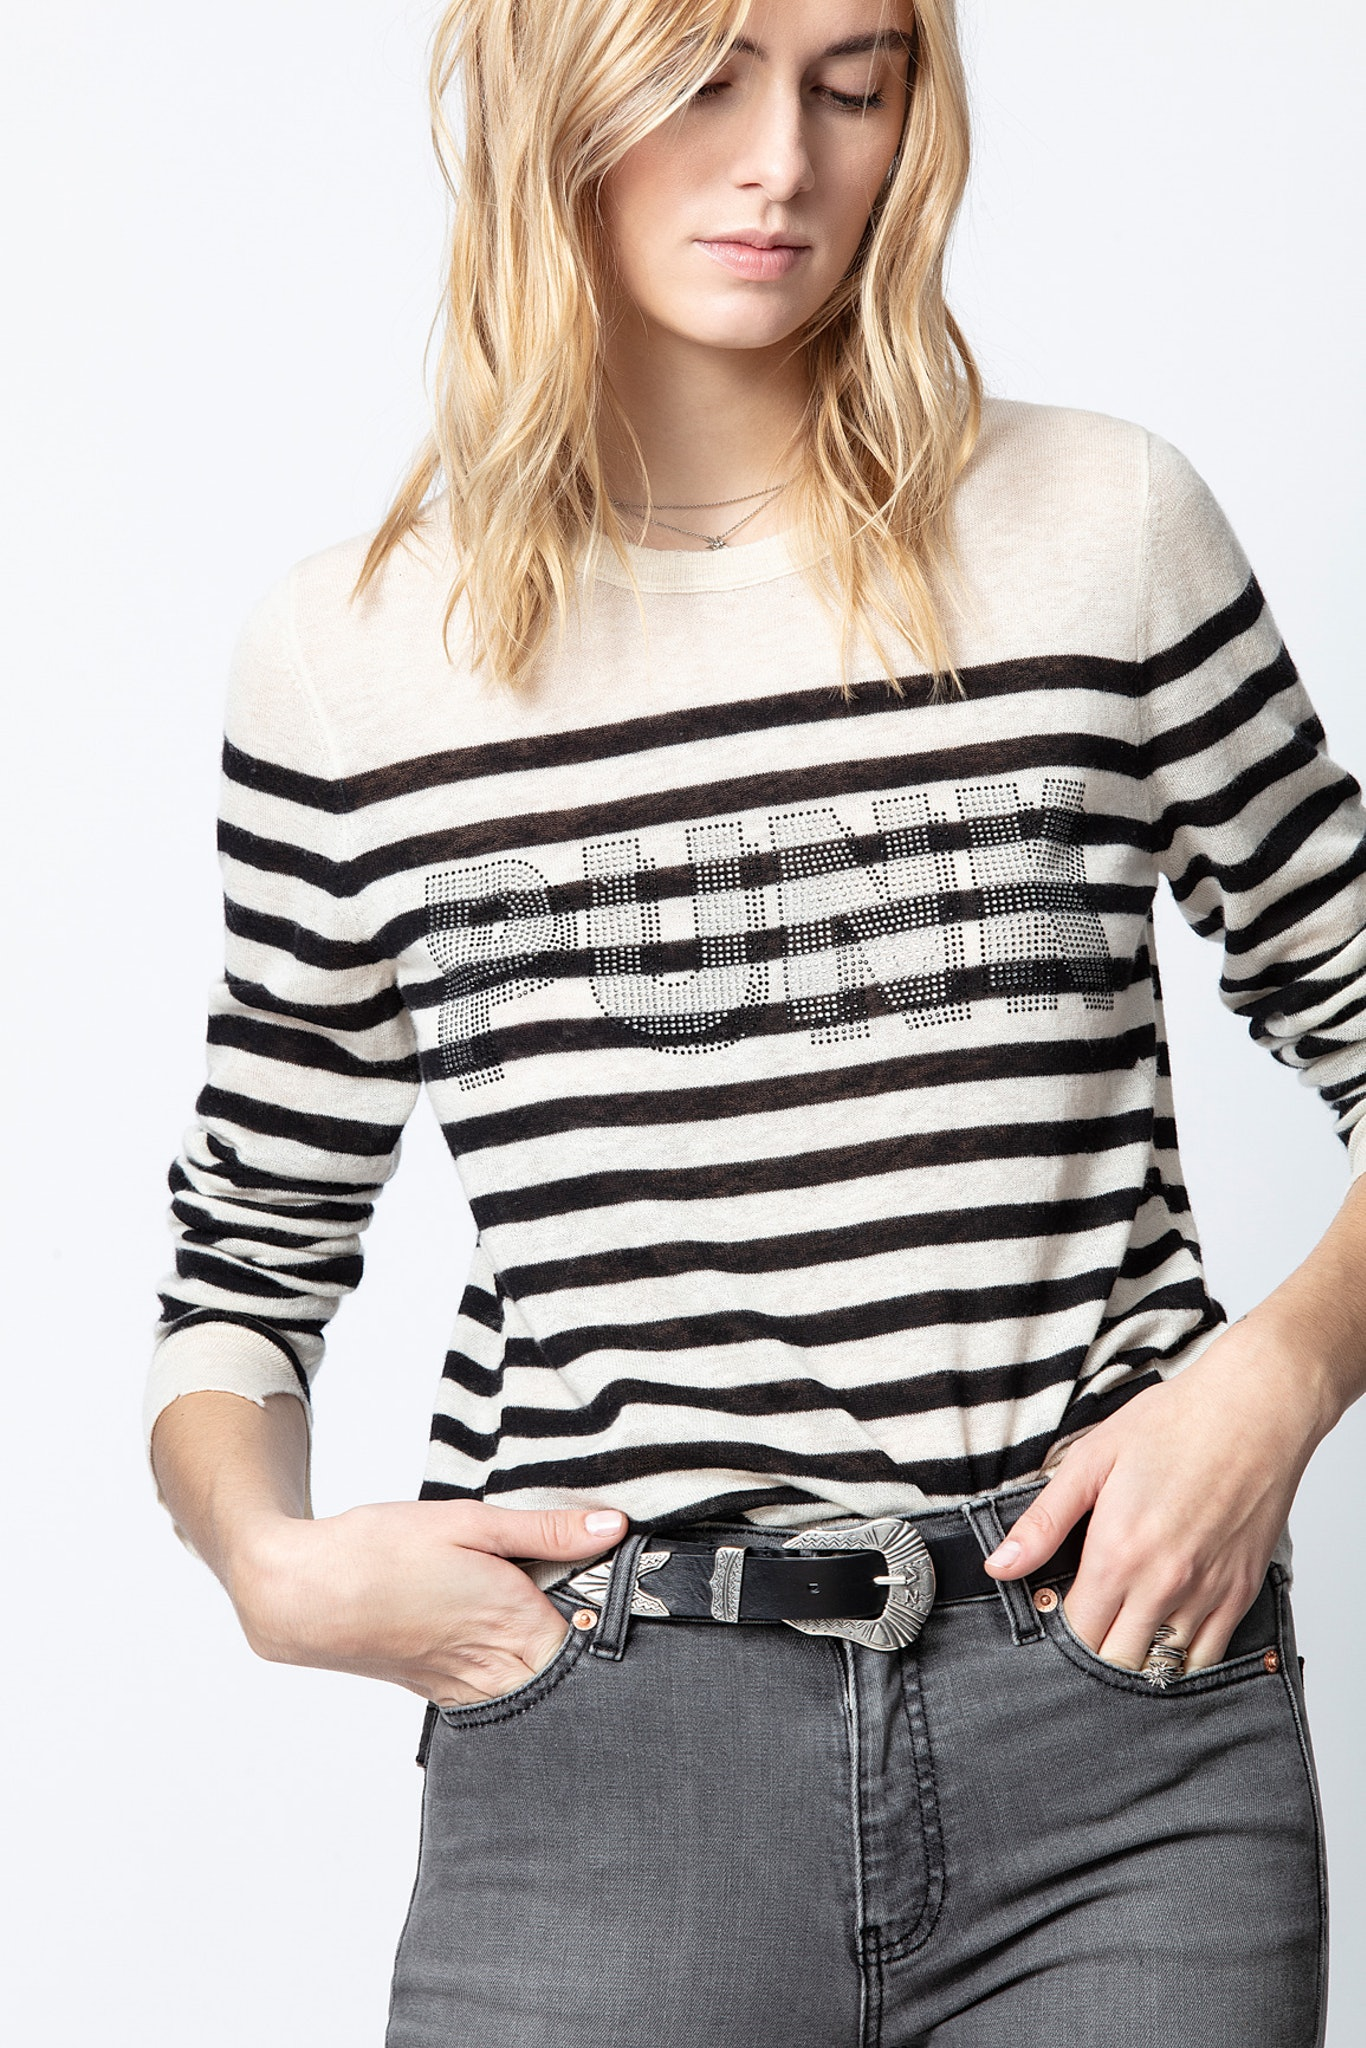 Source Stripes Punk 3D Strass Cashmere Sweater